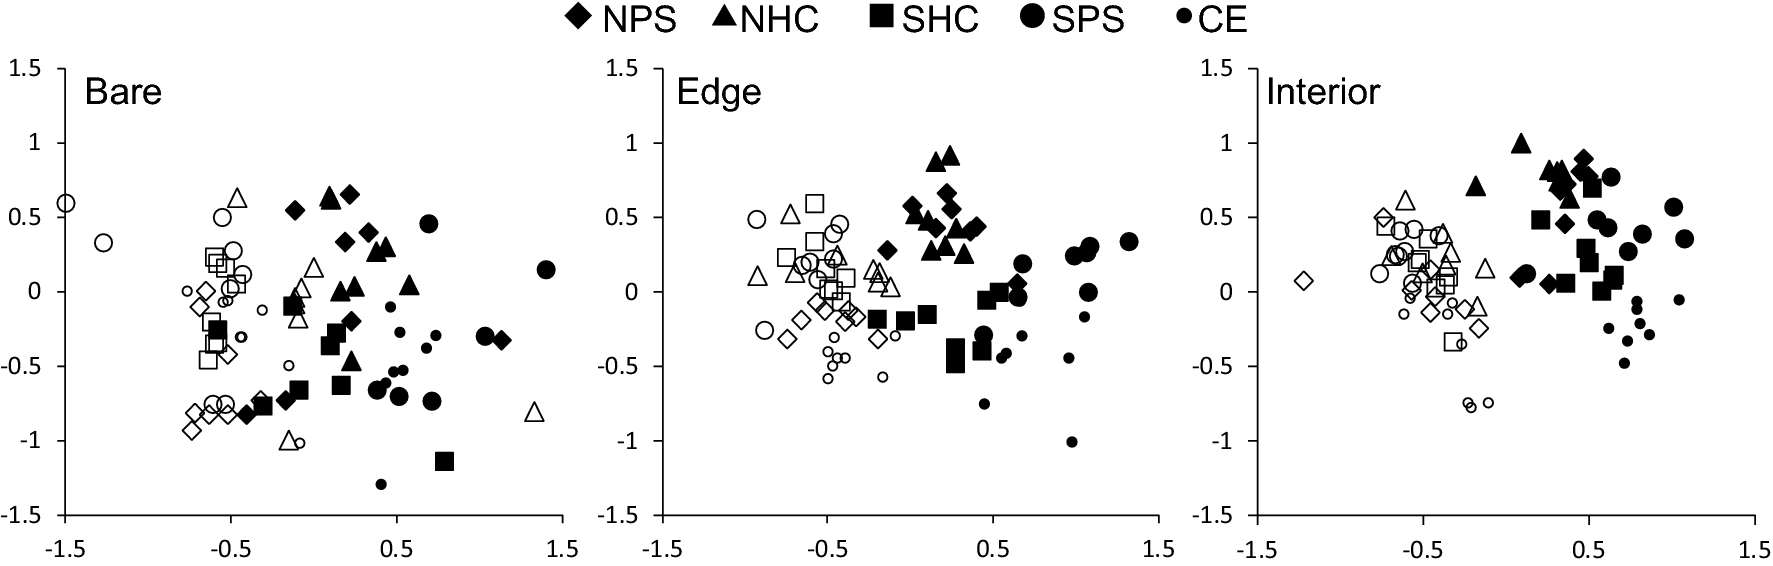 Habitat structure influences the seasonality of nekton in seagrass